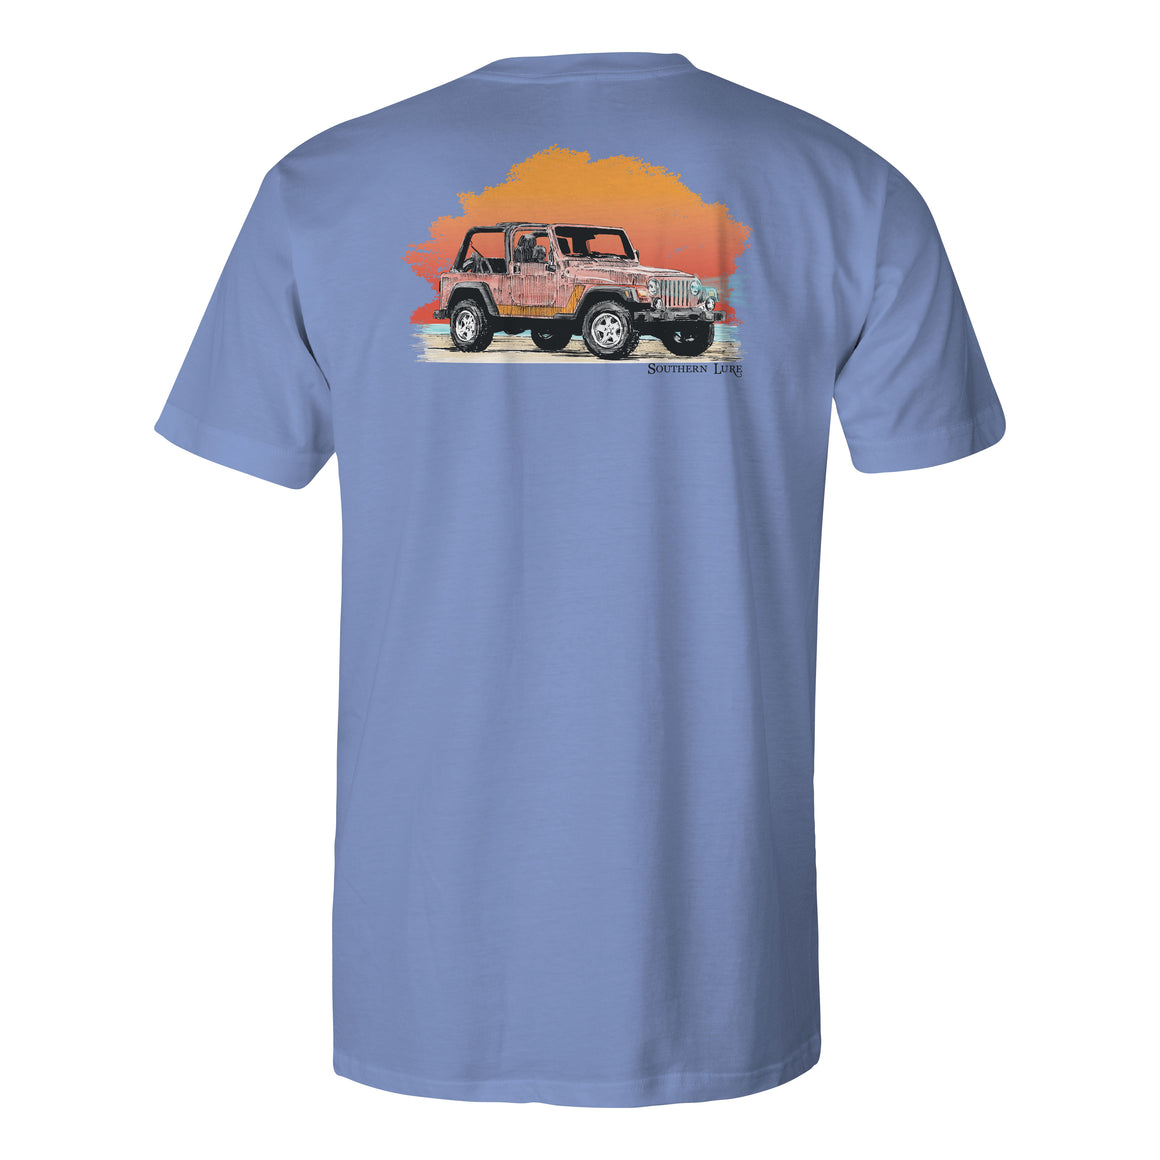 Youth - SS Tee - Off Road - Dusk